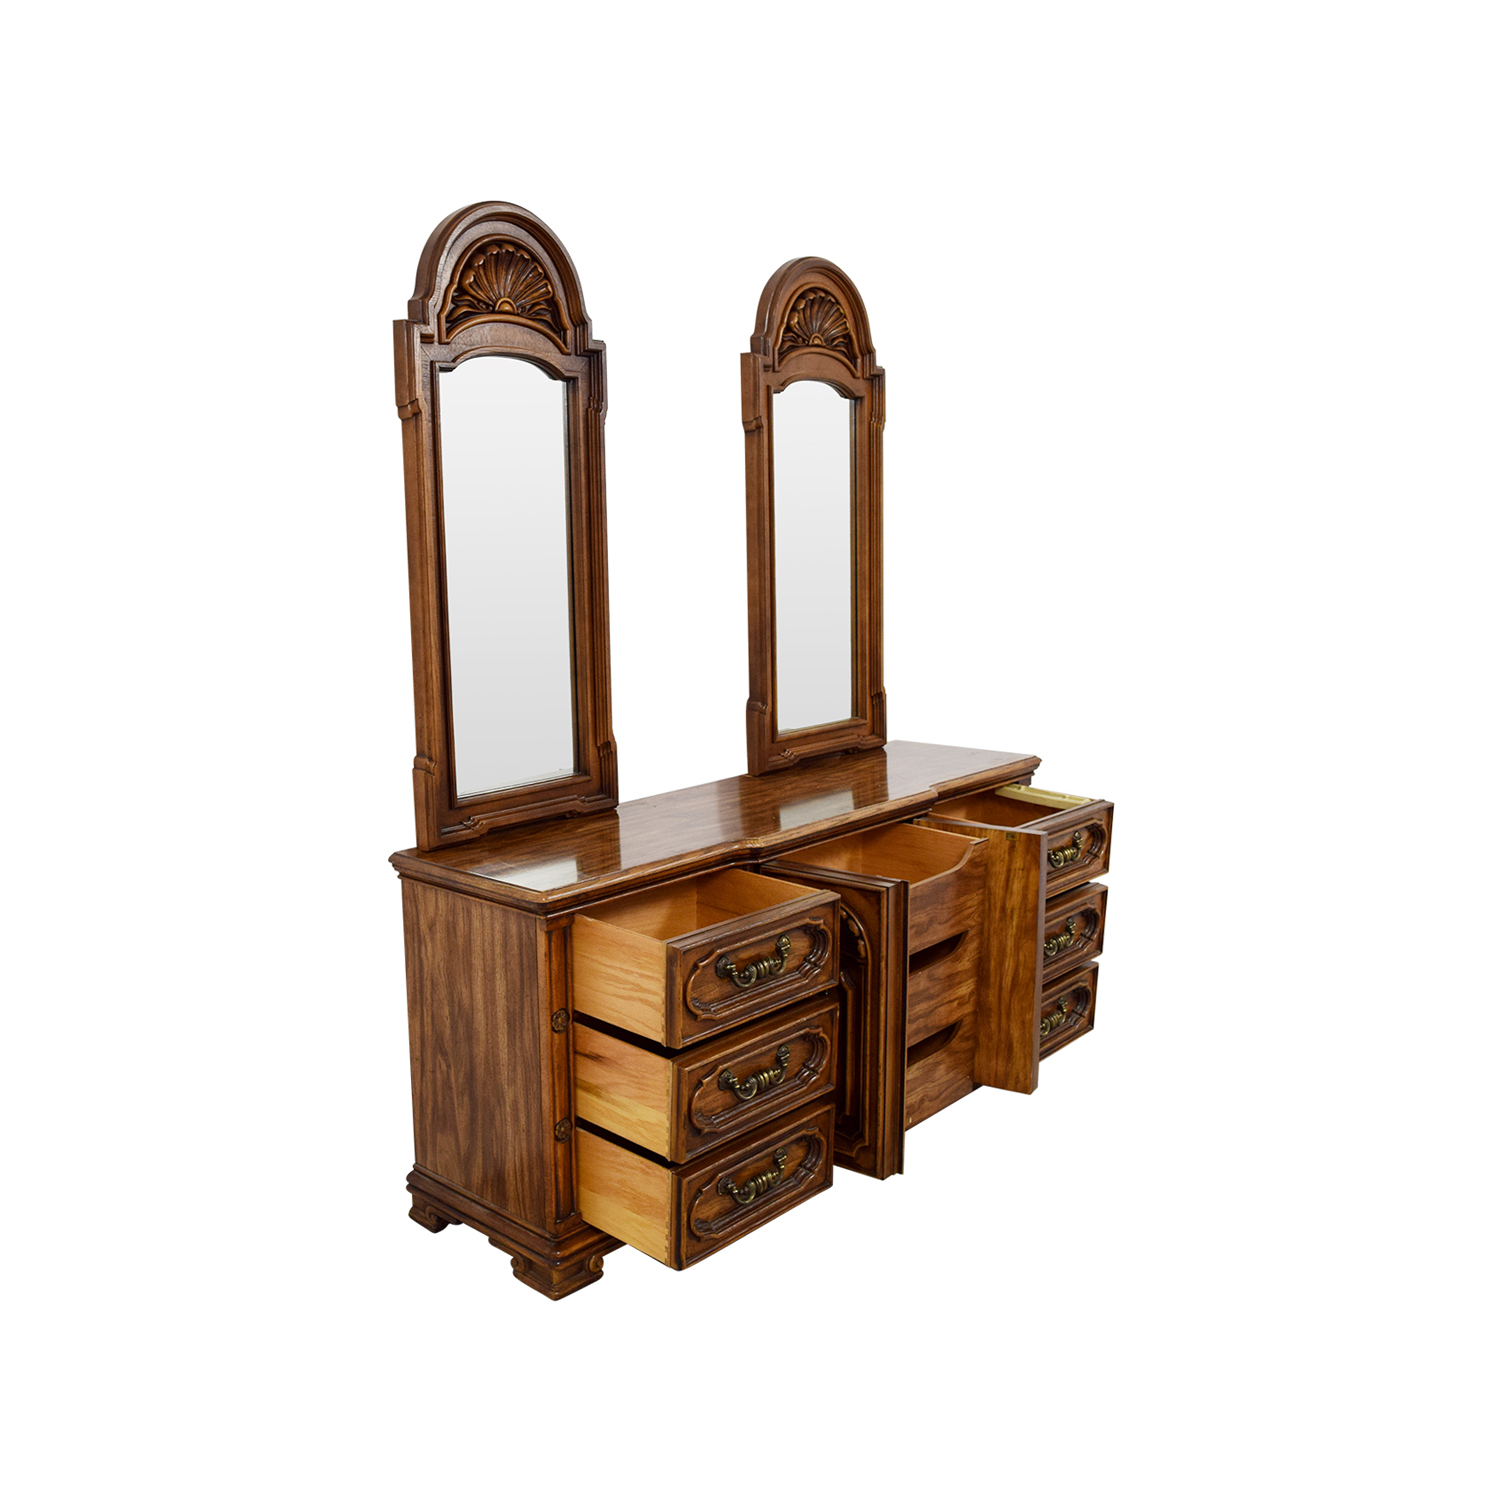 shop Seaman's Seaman's Two Mirror Wood Dresser online